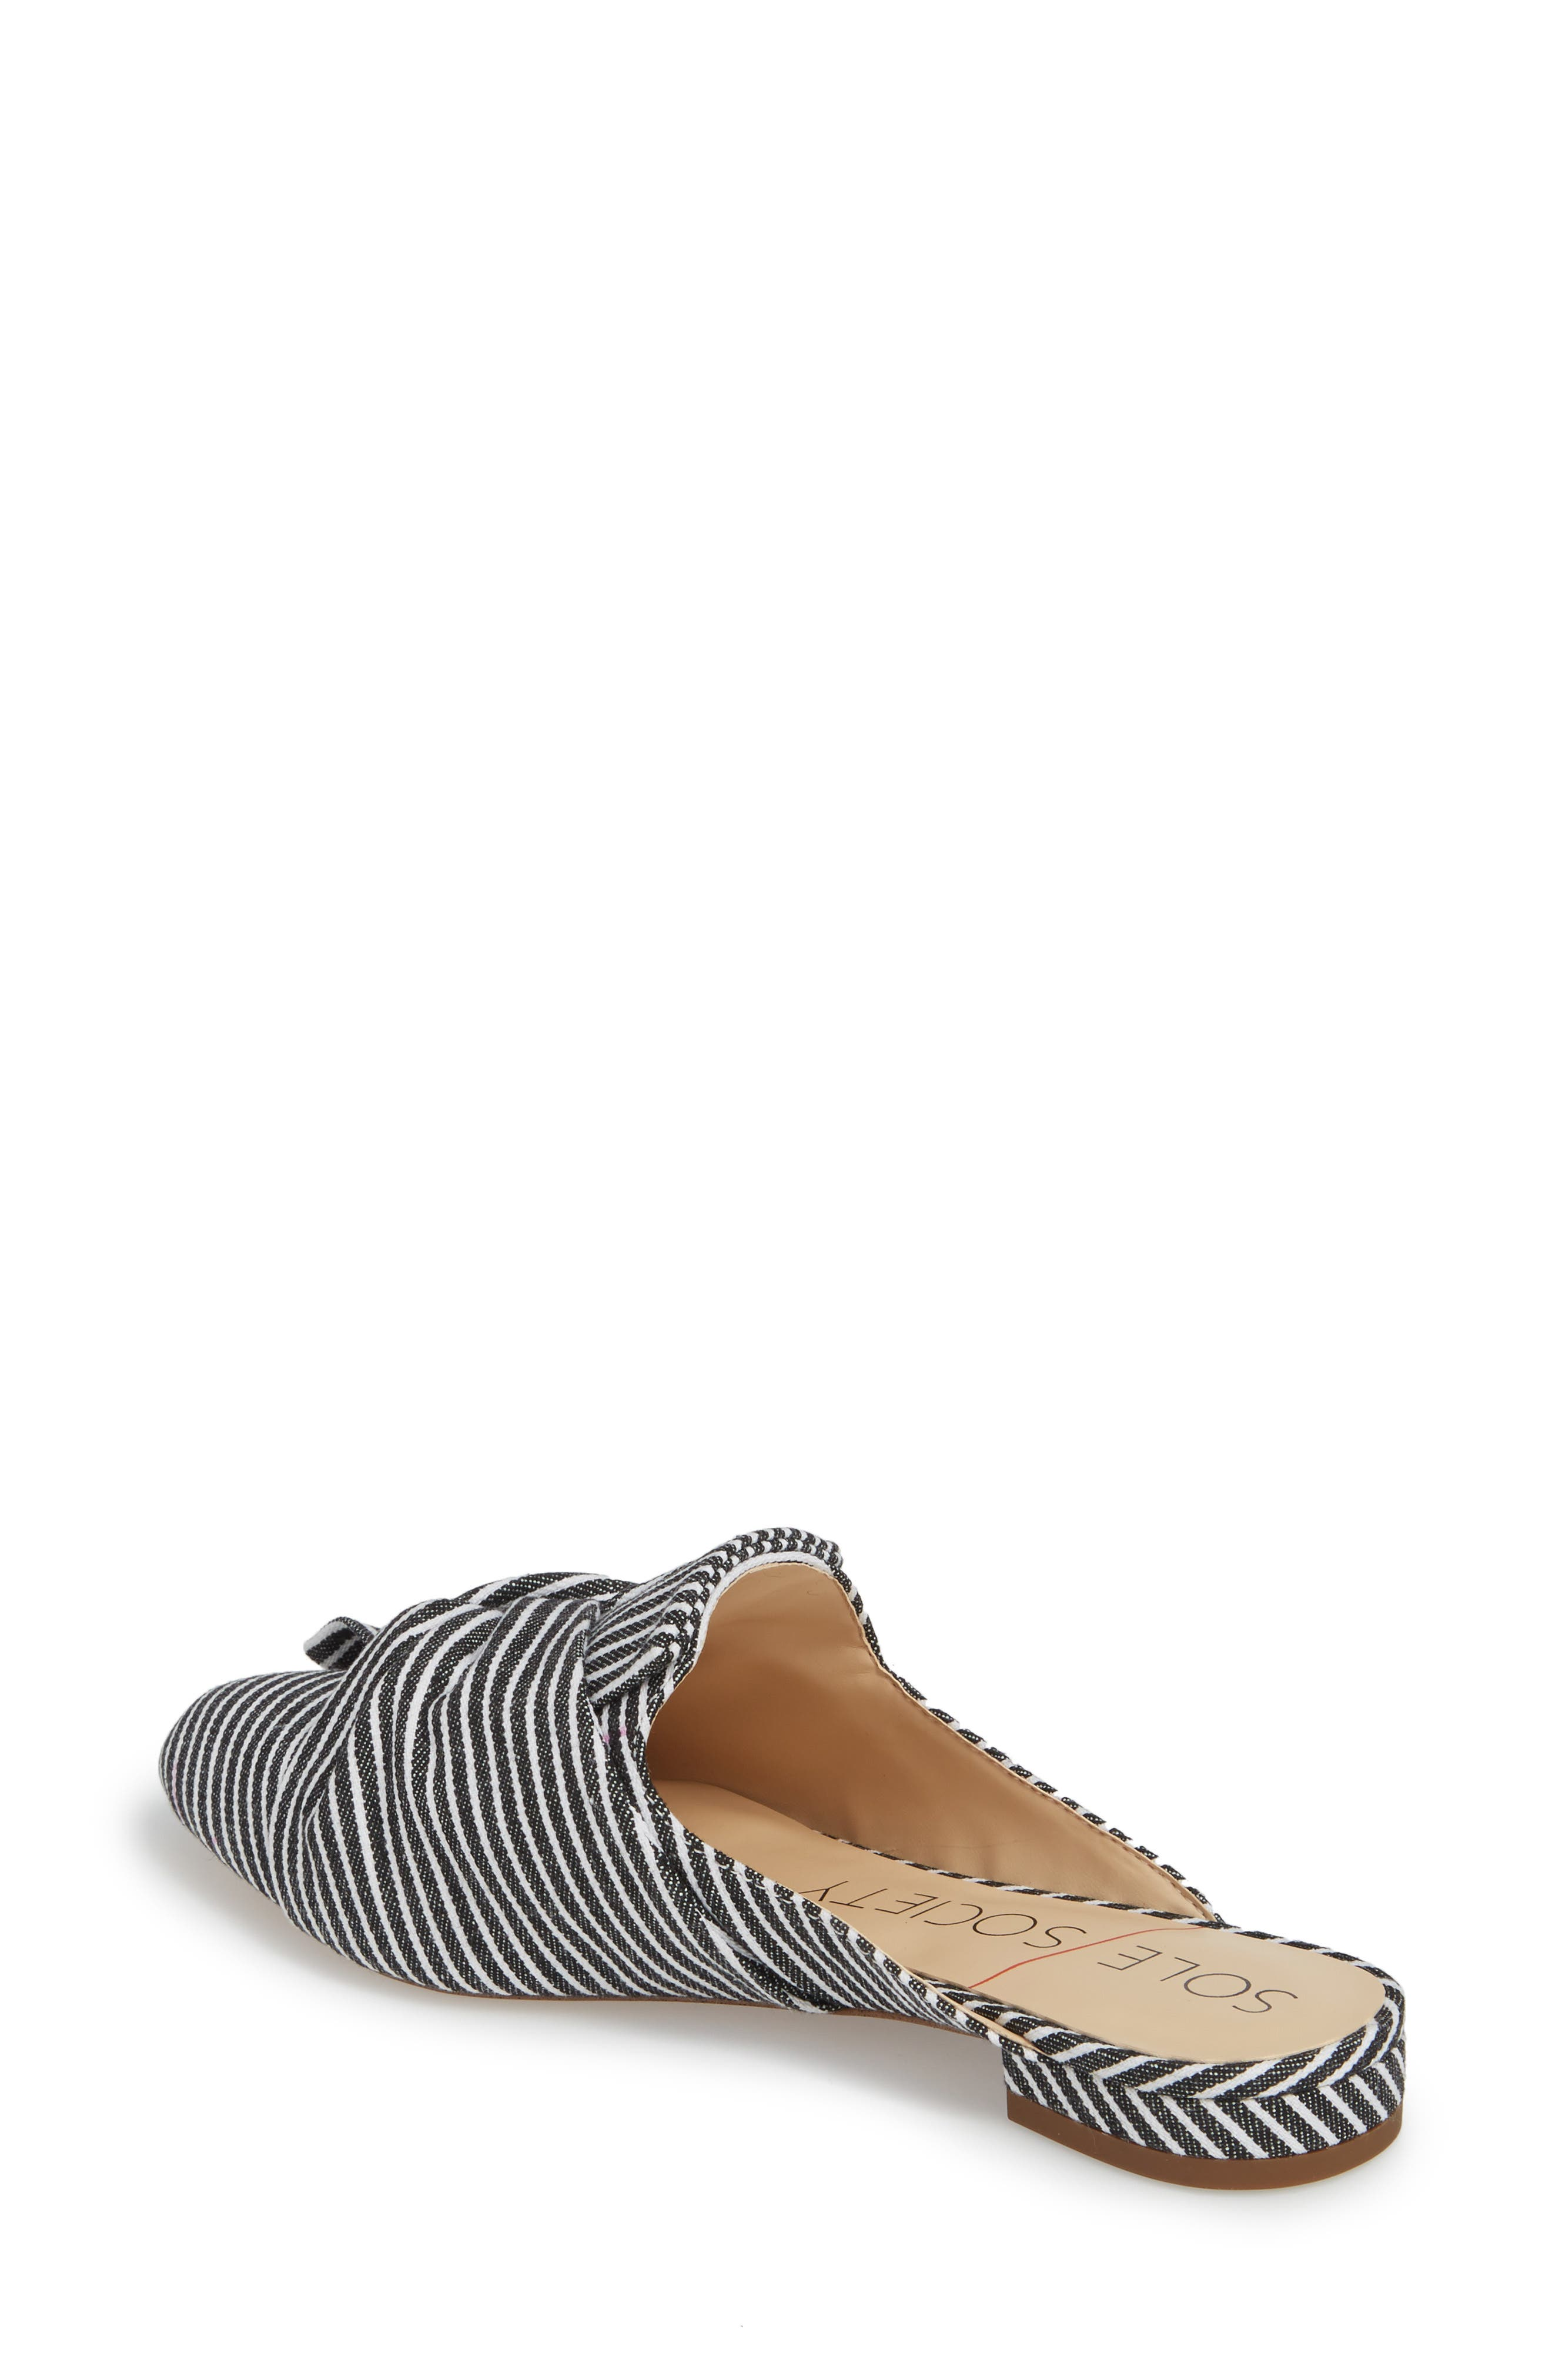 Alternate Image 2  - Sole Society Pear Knotted Mule (Women)